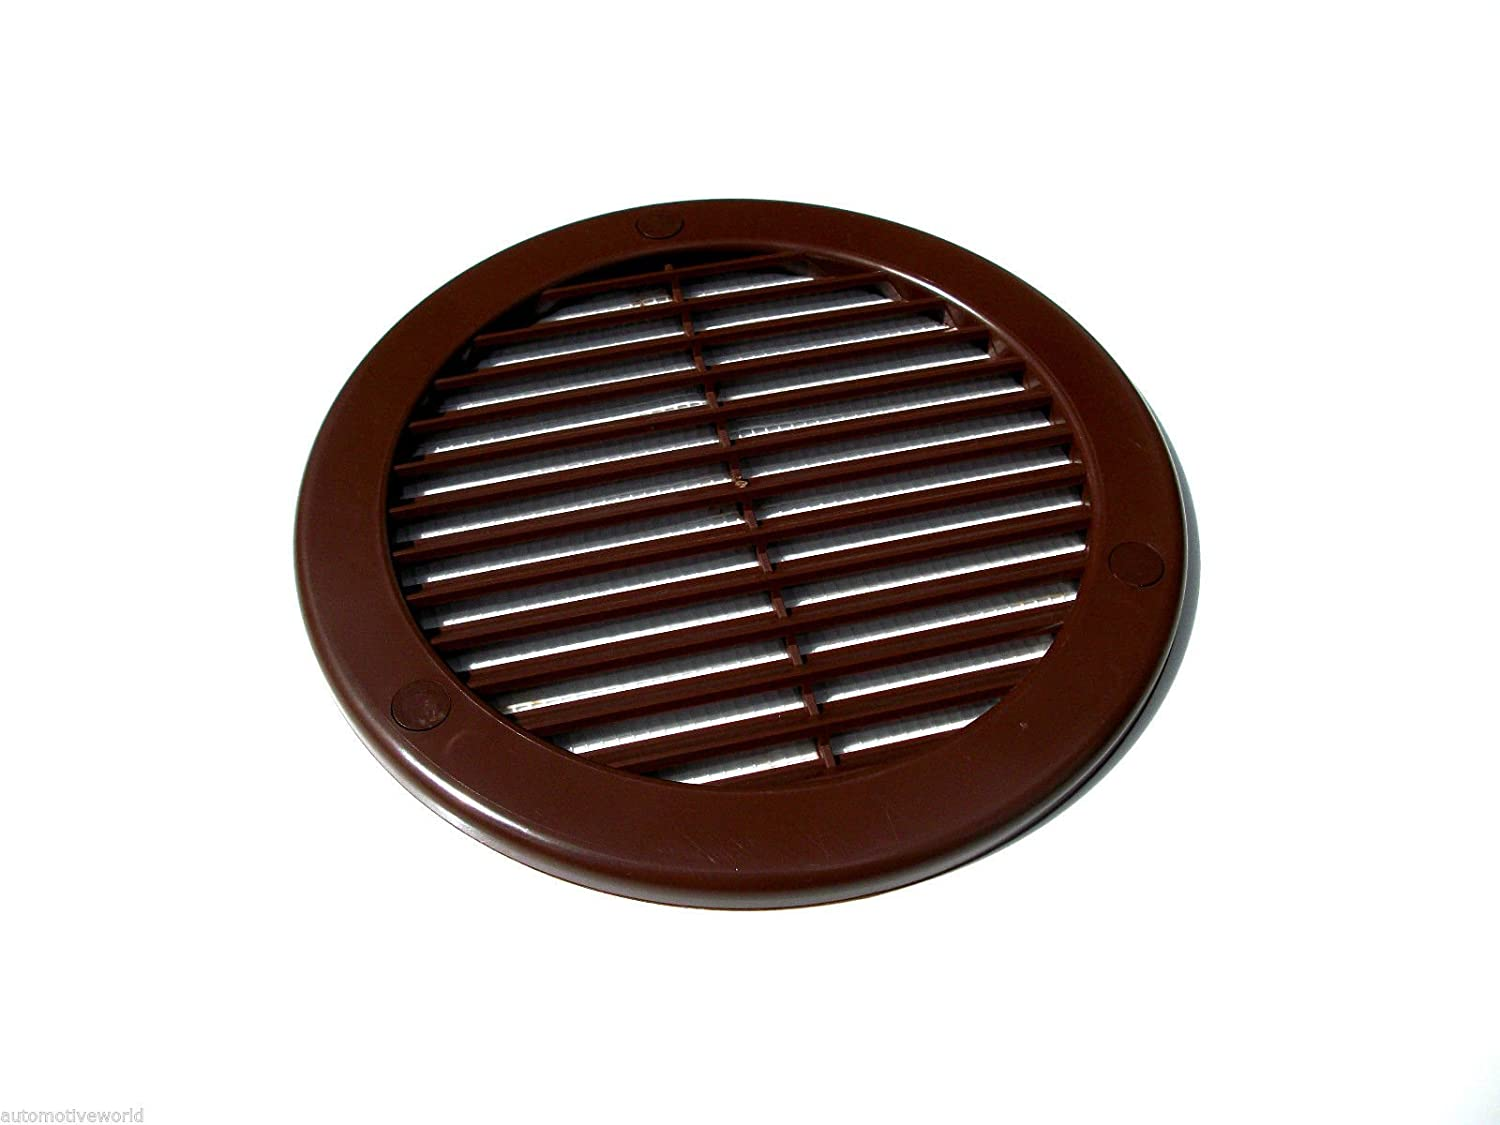 Brown Circle Air Vent Grille 150mm / 6